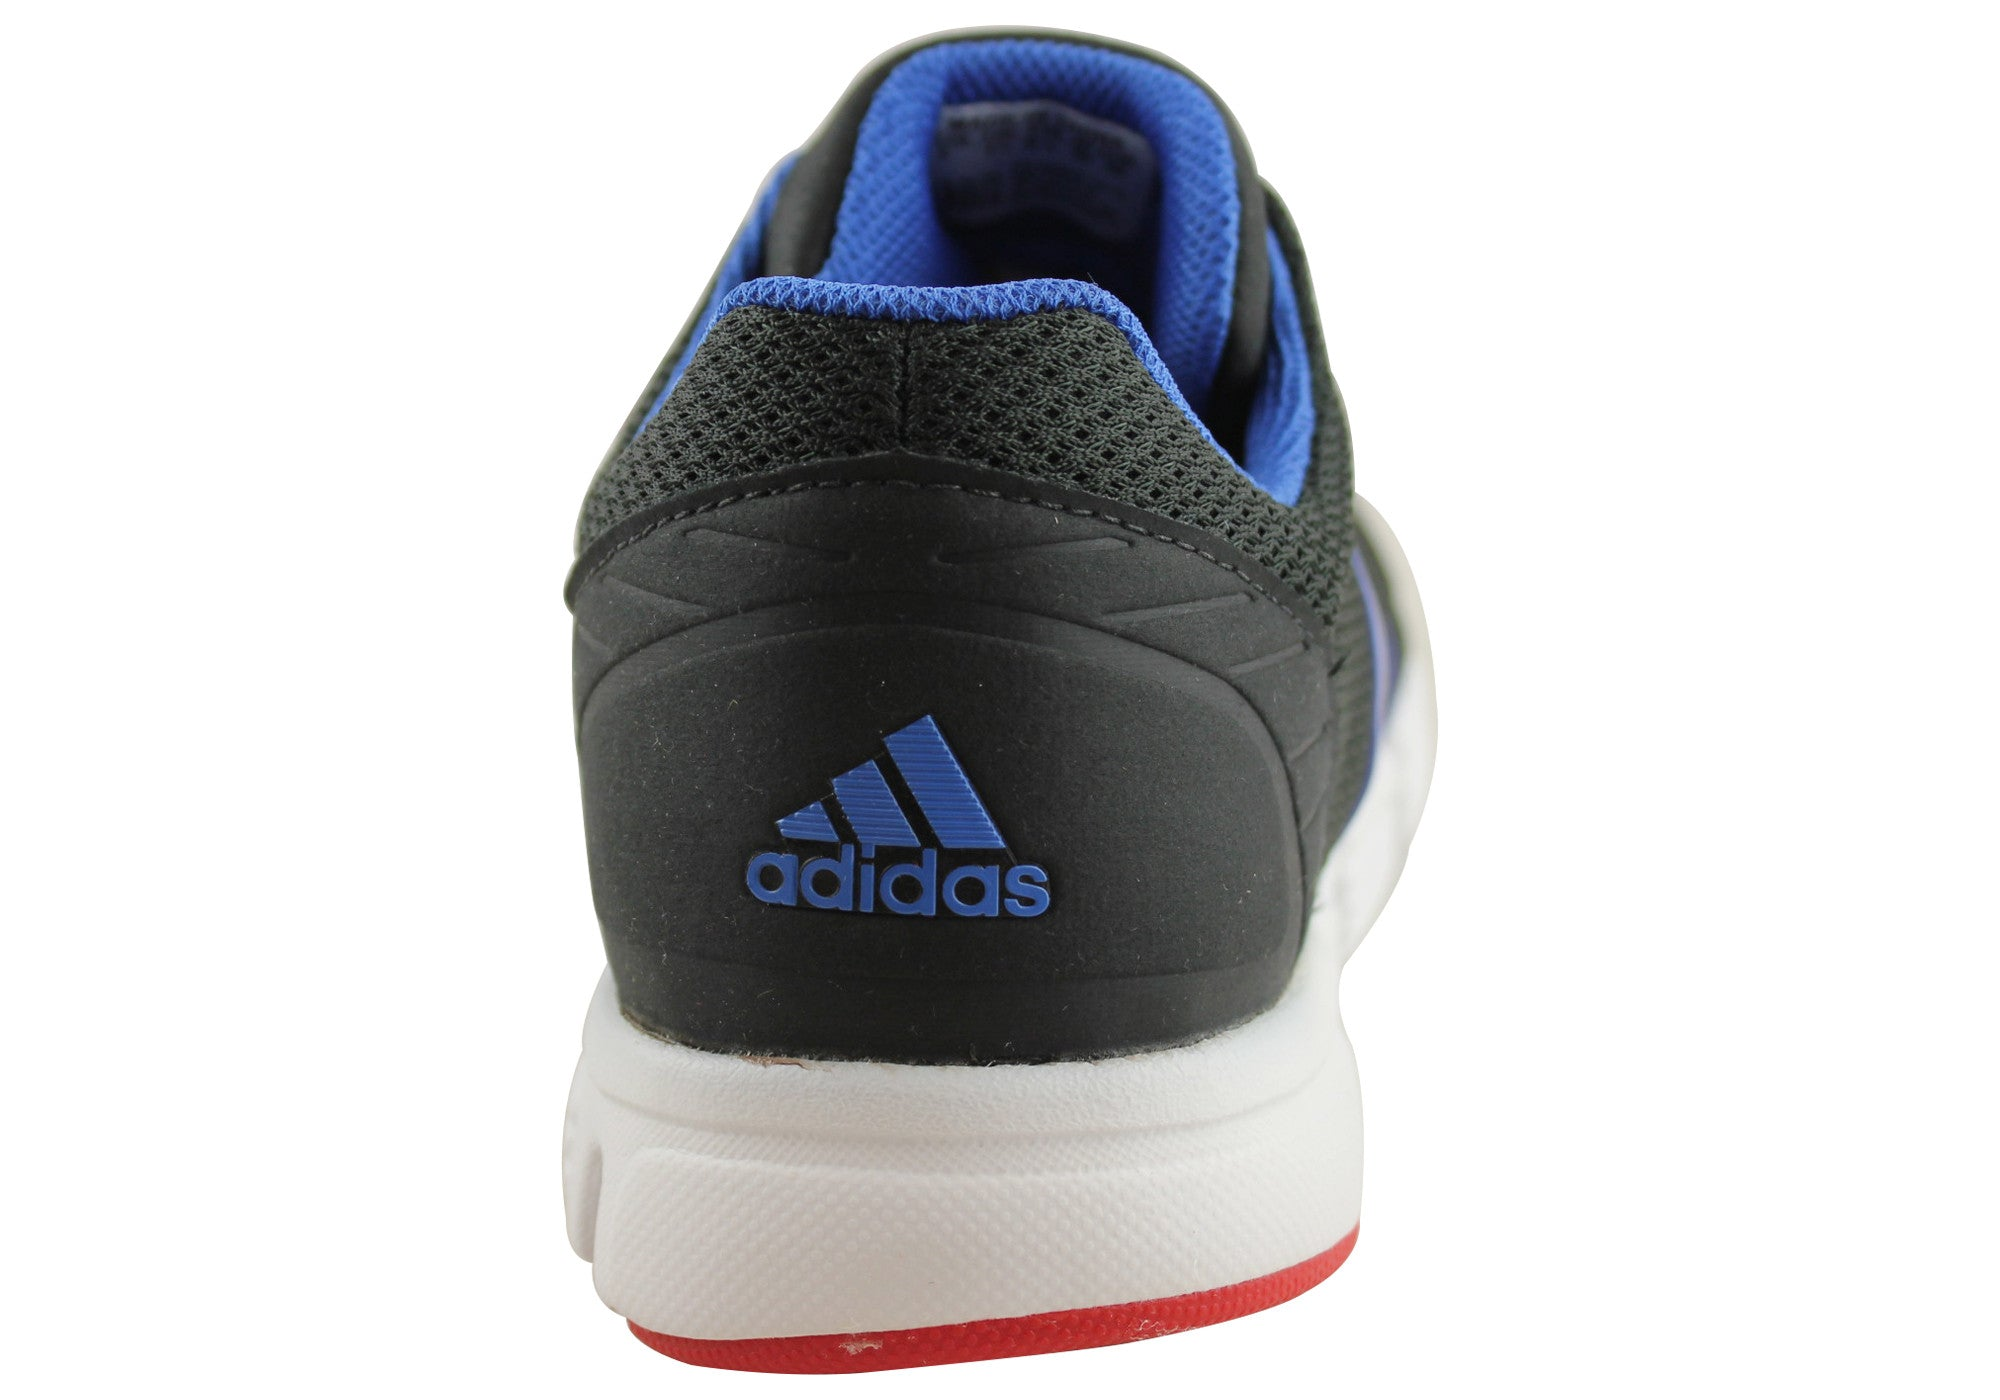 Adidas Kids CC Chill J Running Shoes